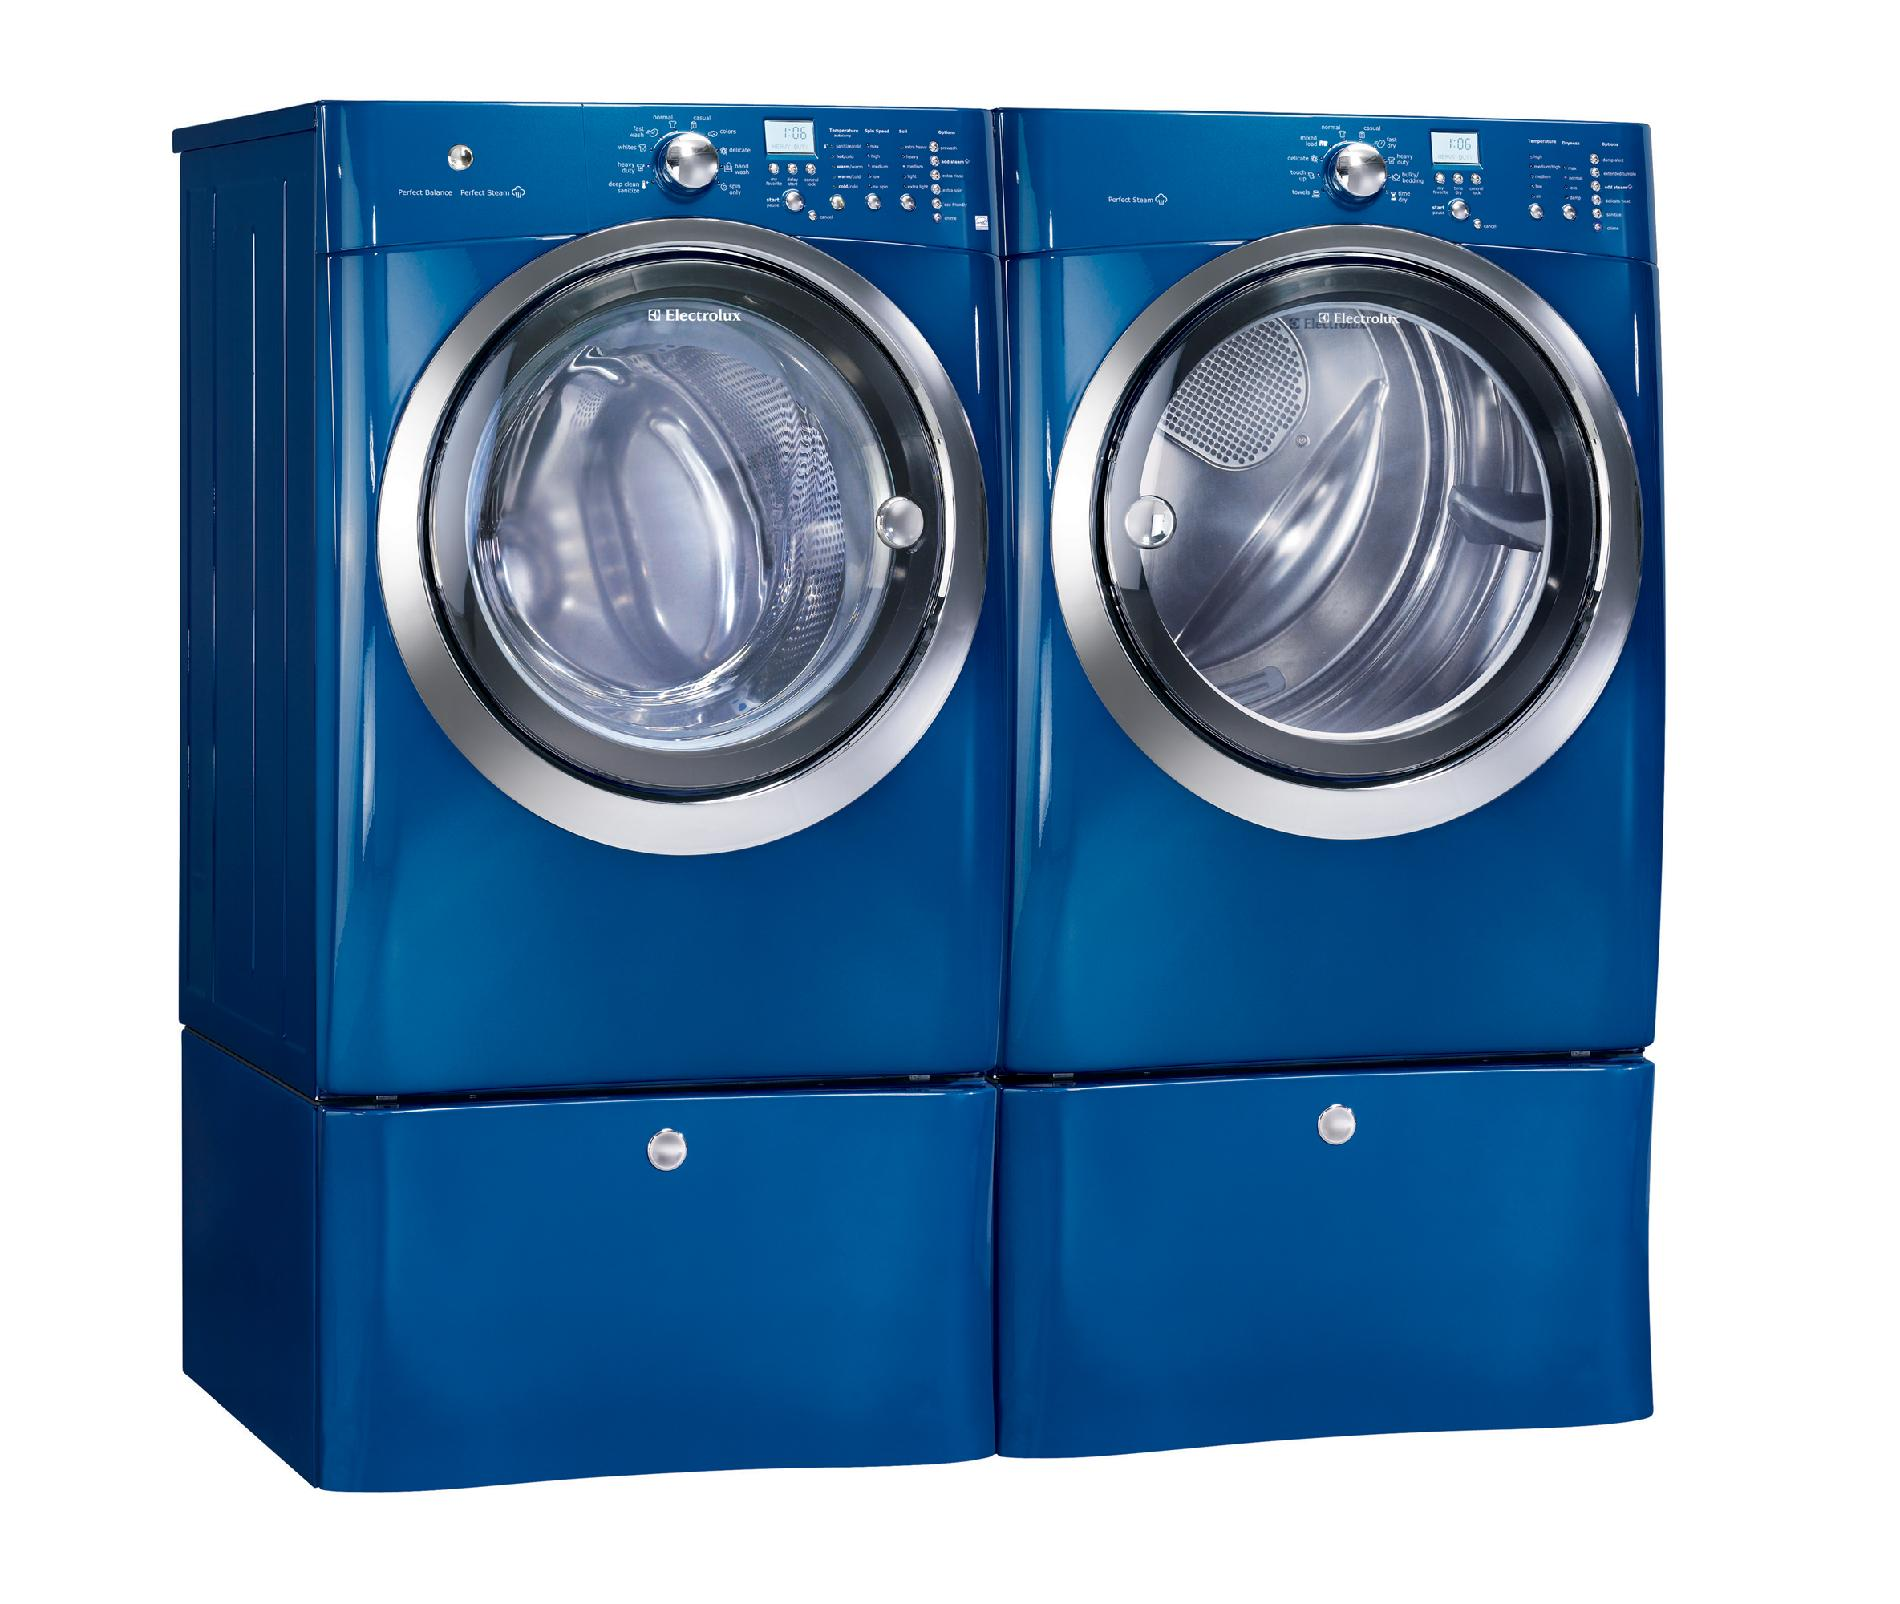 Electrolux 4.1 cu. ft. Front-load Washer w/ Steam - Mediterranean Blue